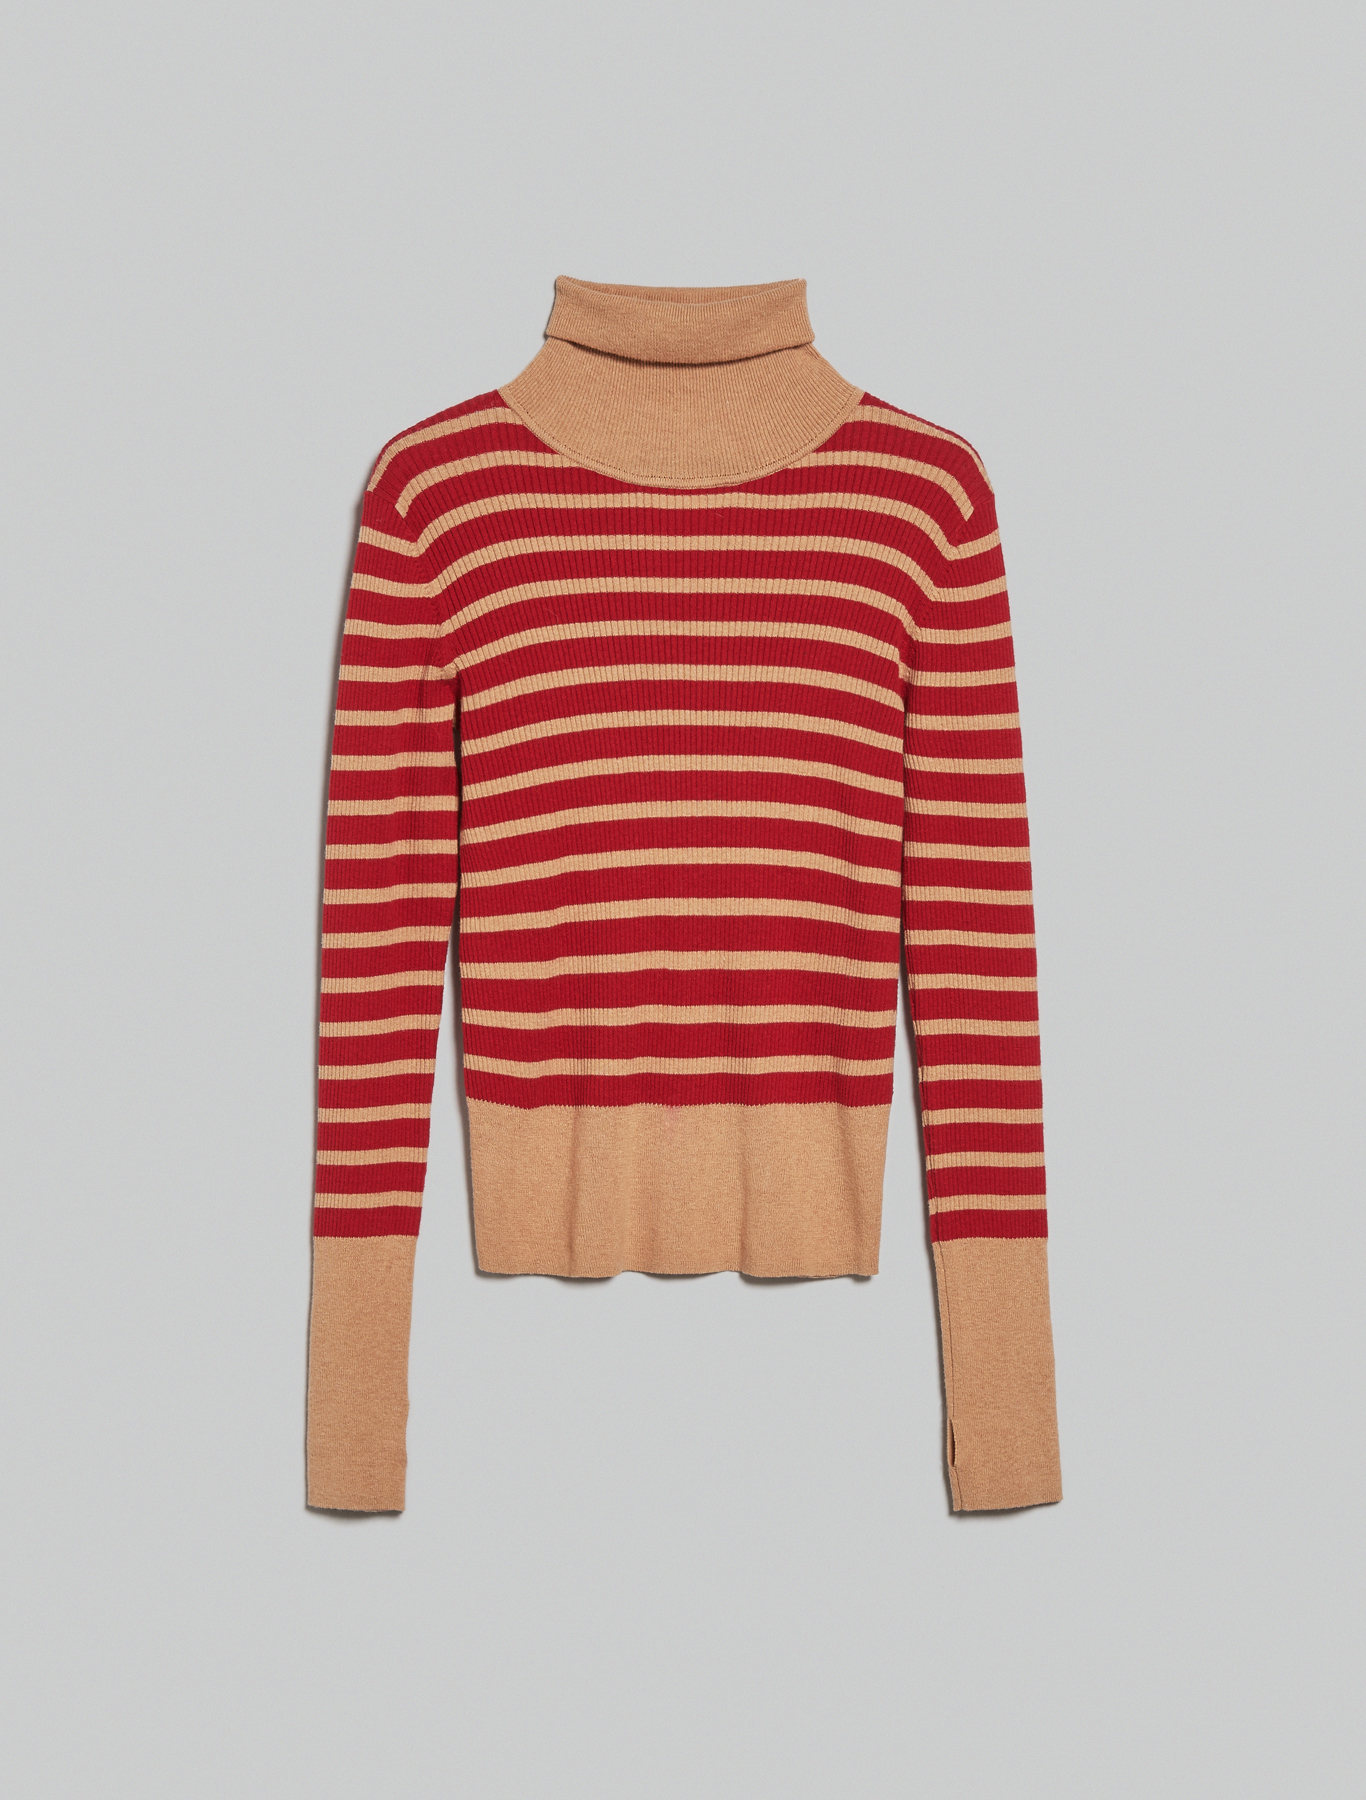 Cotton and cashmere turtleneck - red pattern - pennyblack